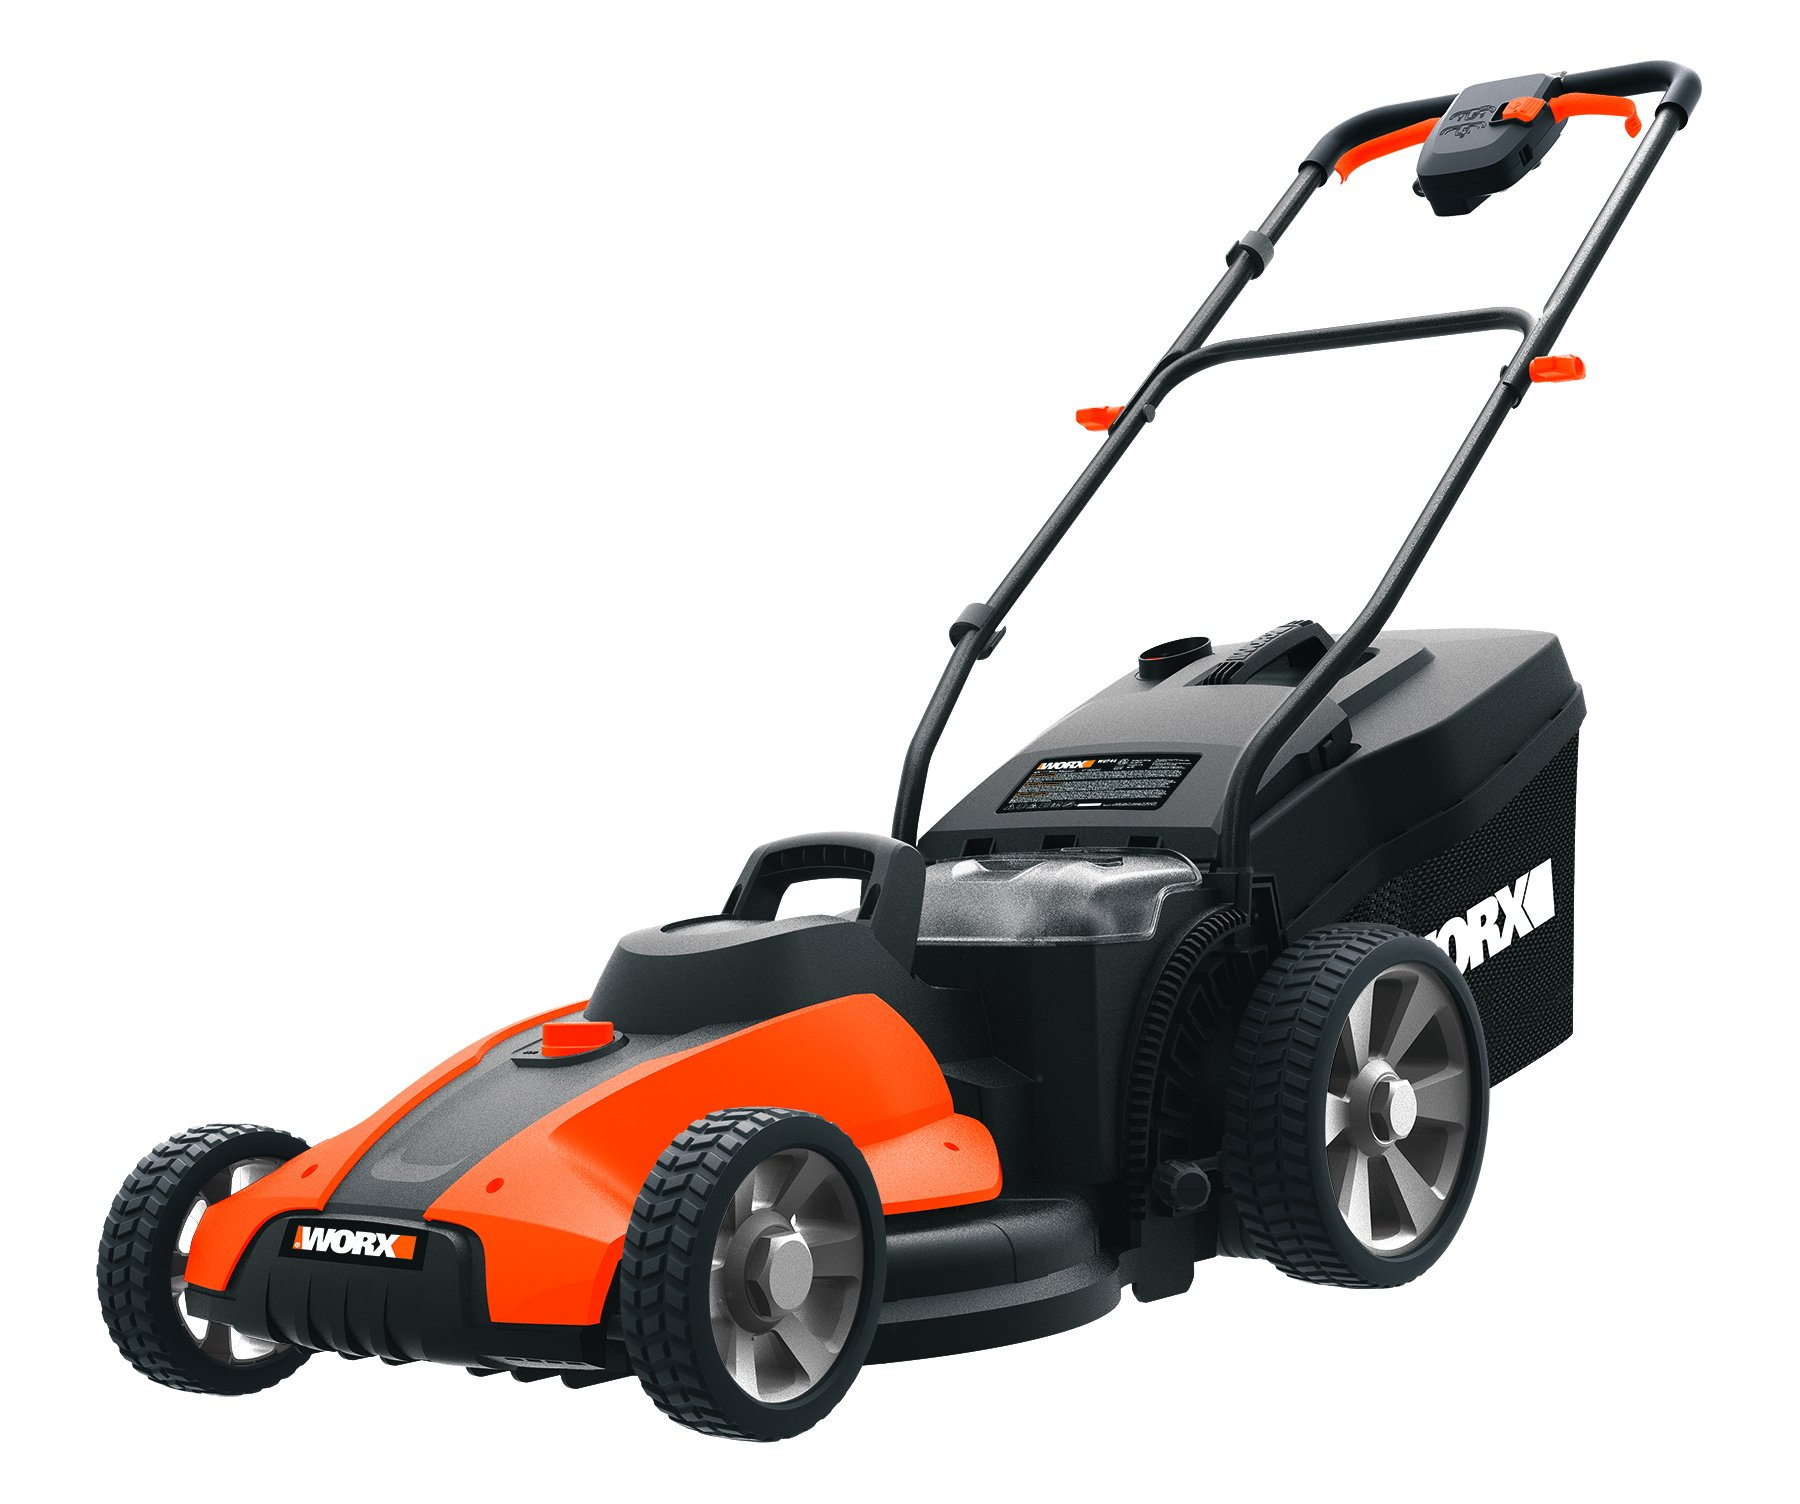 Worx wg744 cordless lawn mower 1 the 17 inches mower includes 2 removable 20v 4; 0ah batteries that delivers 40v power and performance patented intellicut provides additional torque on demand and the ability to conserve battery when desired premium 2 in 1 design that mulches, bags and rear discharges and includes a quick single lever cutting height adjustment.